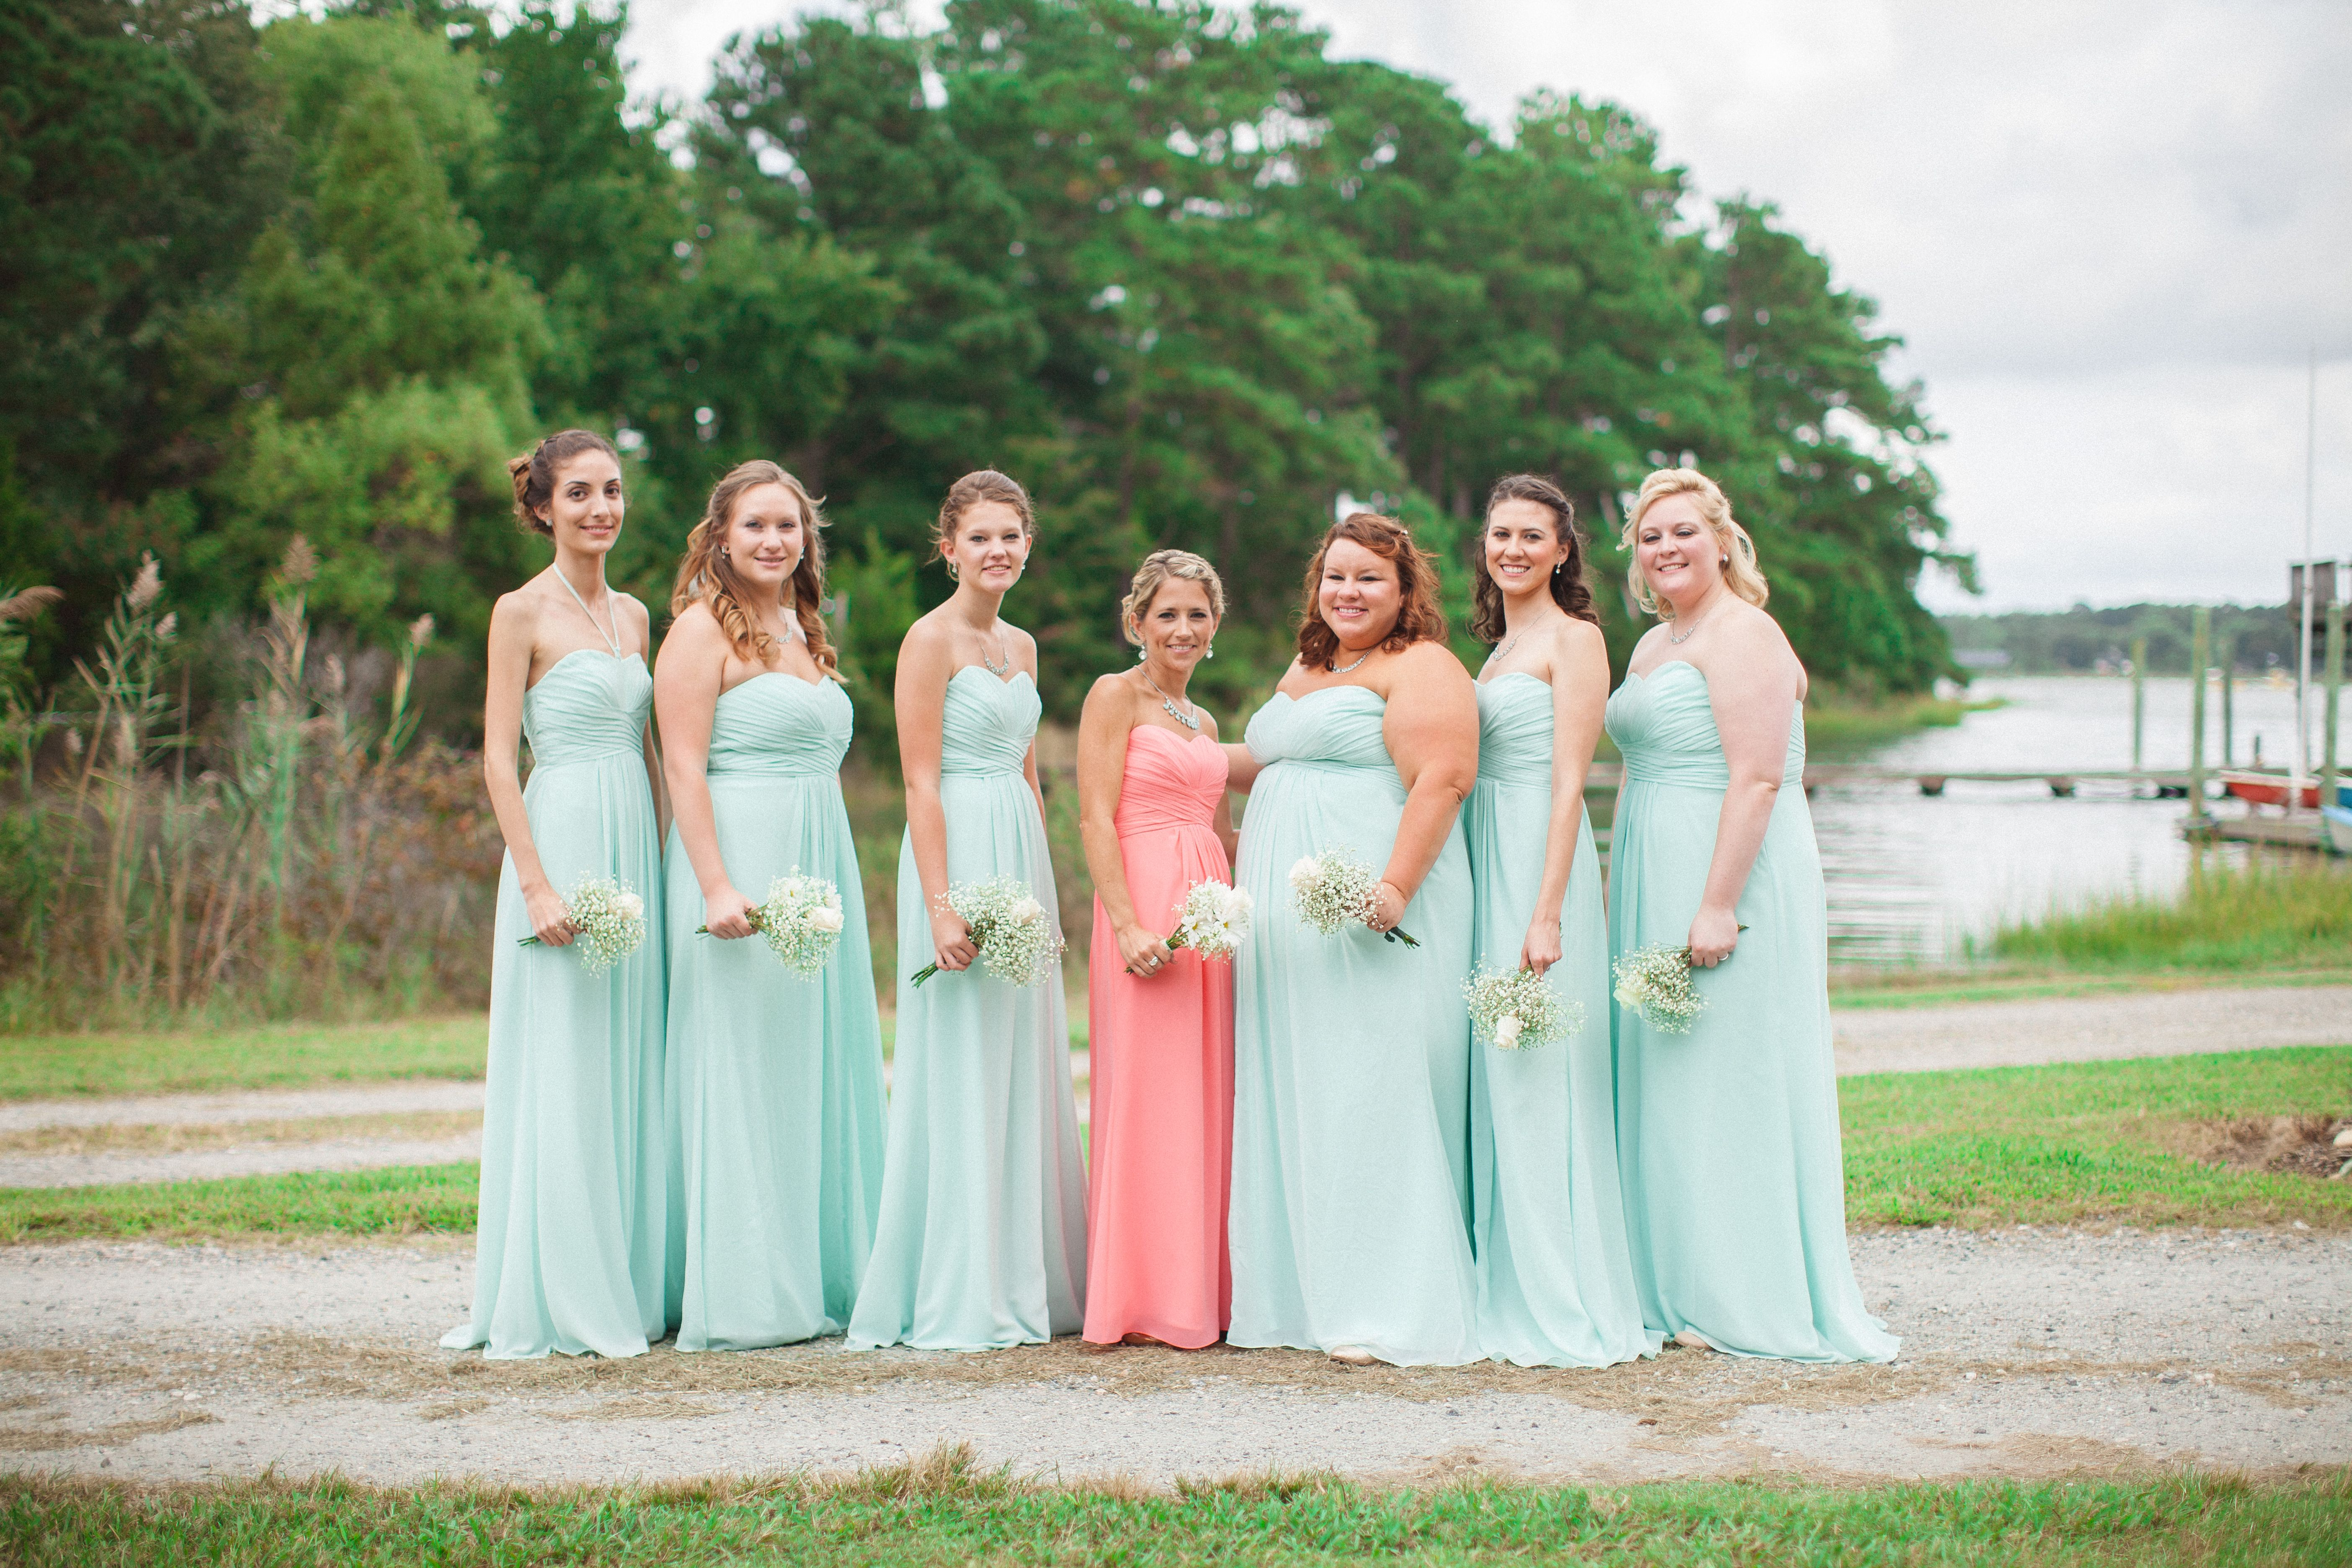 Mint green coral bridesmaid dress simple style cheap formal women mint green coral bridesmaid dress simple style cheap formal women wedding party thrasher wedding 2017 pinterest green weddings weddings and wedding ombrellifo Image collections